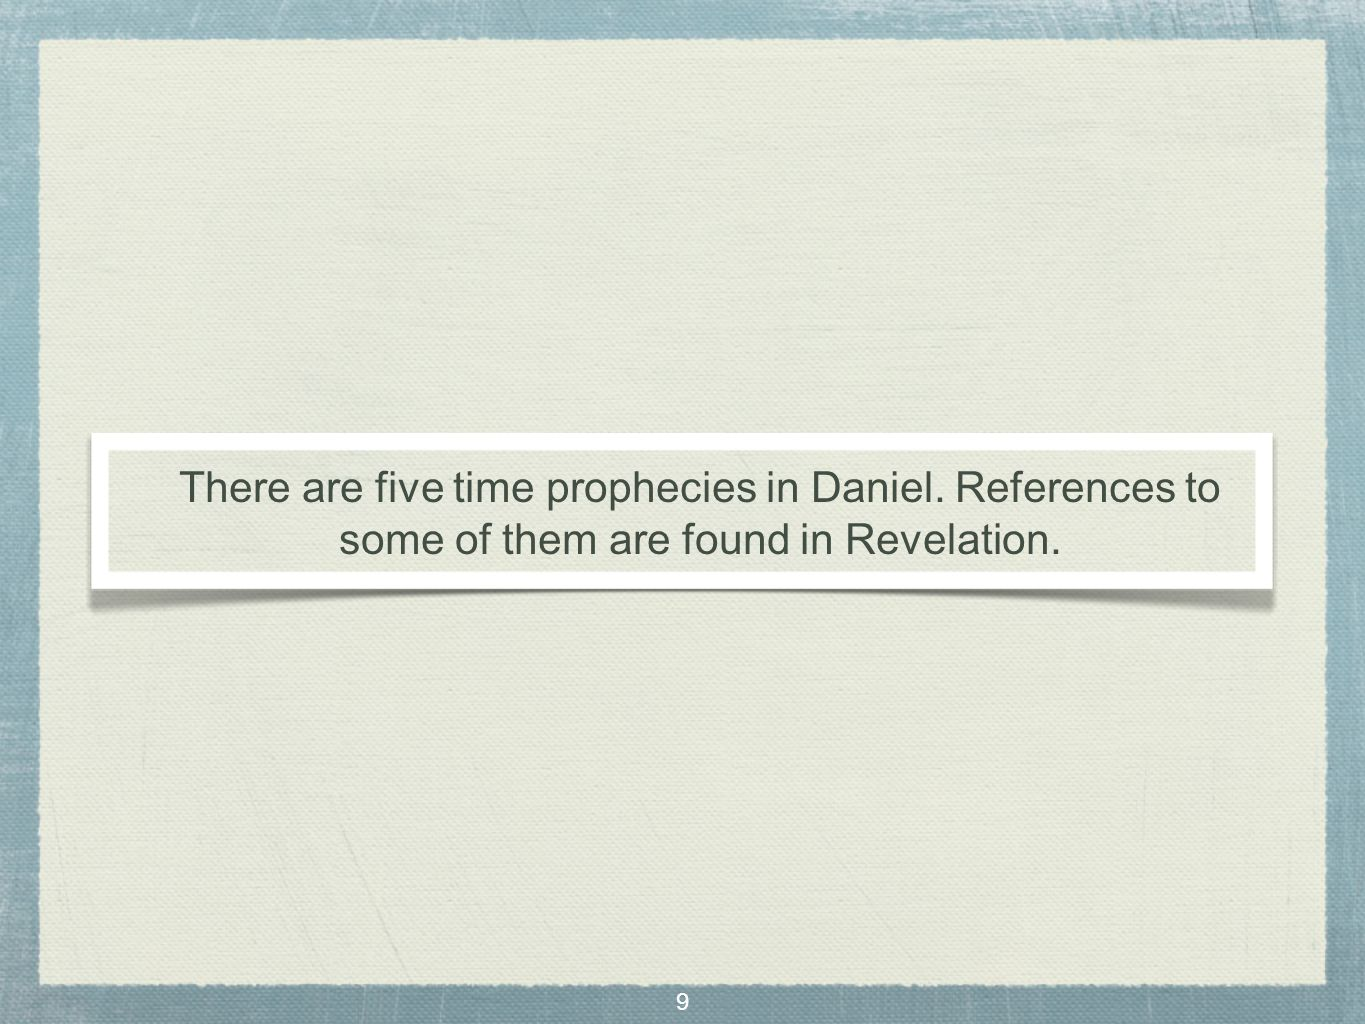 9 There are five time prophecies in Daniel. References to some of them are found in Revelation.